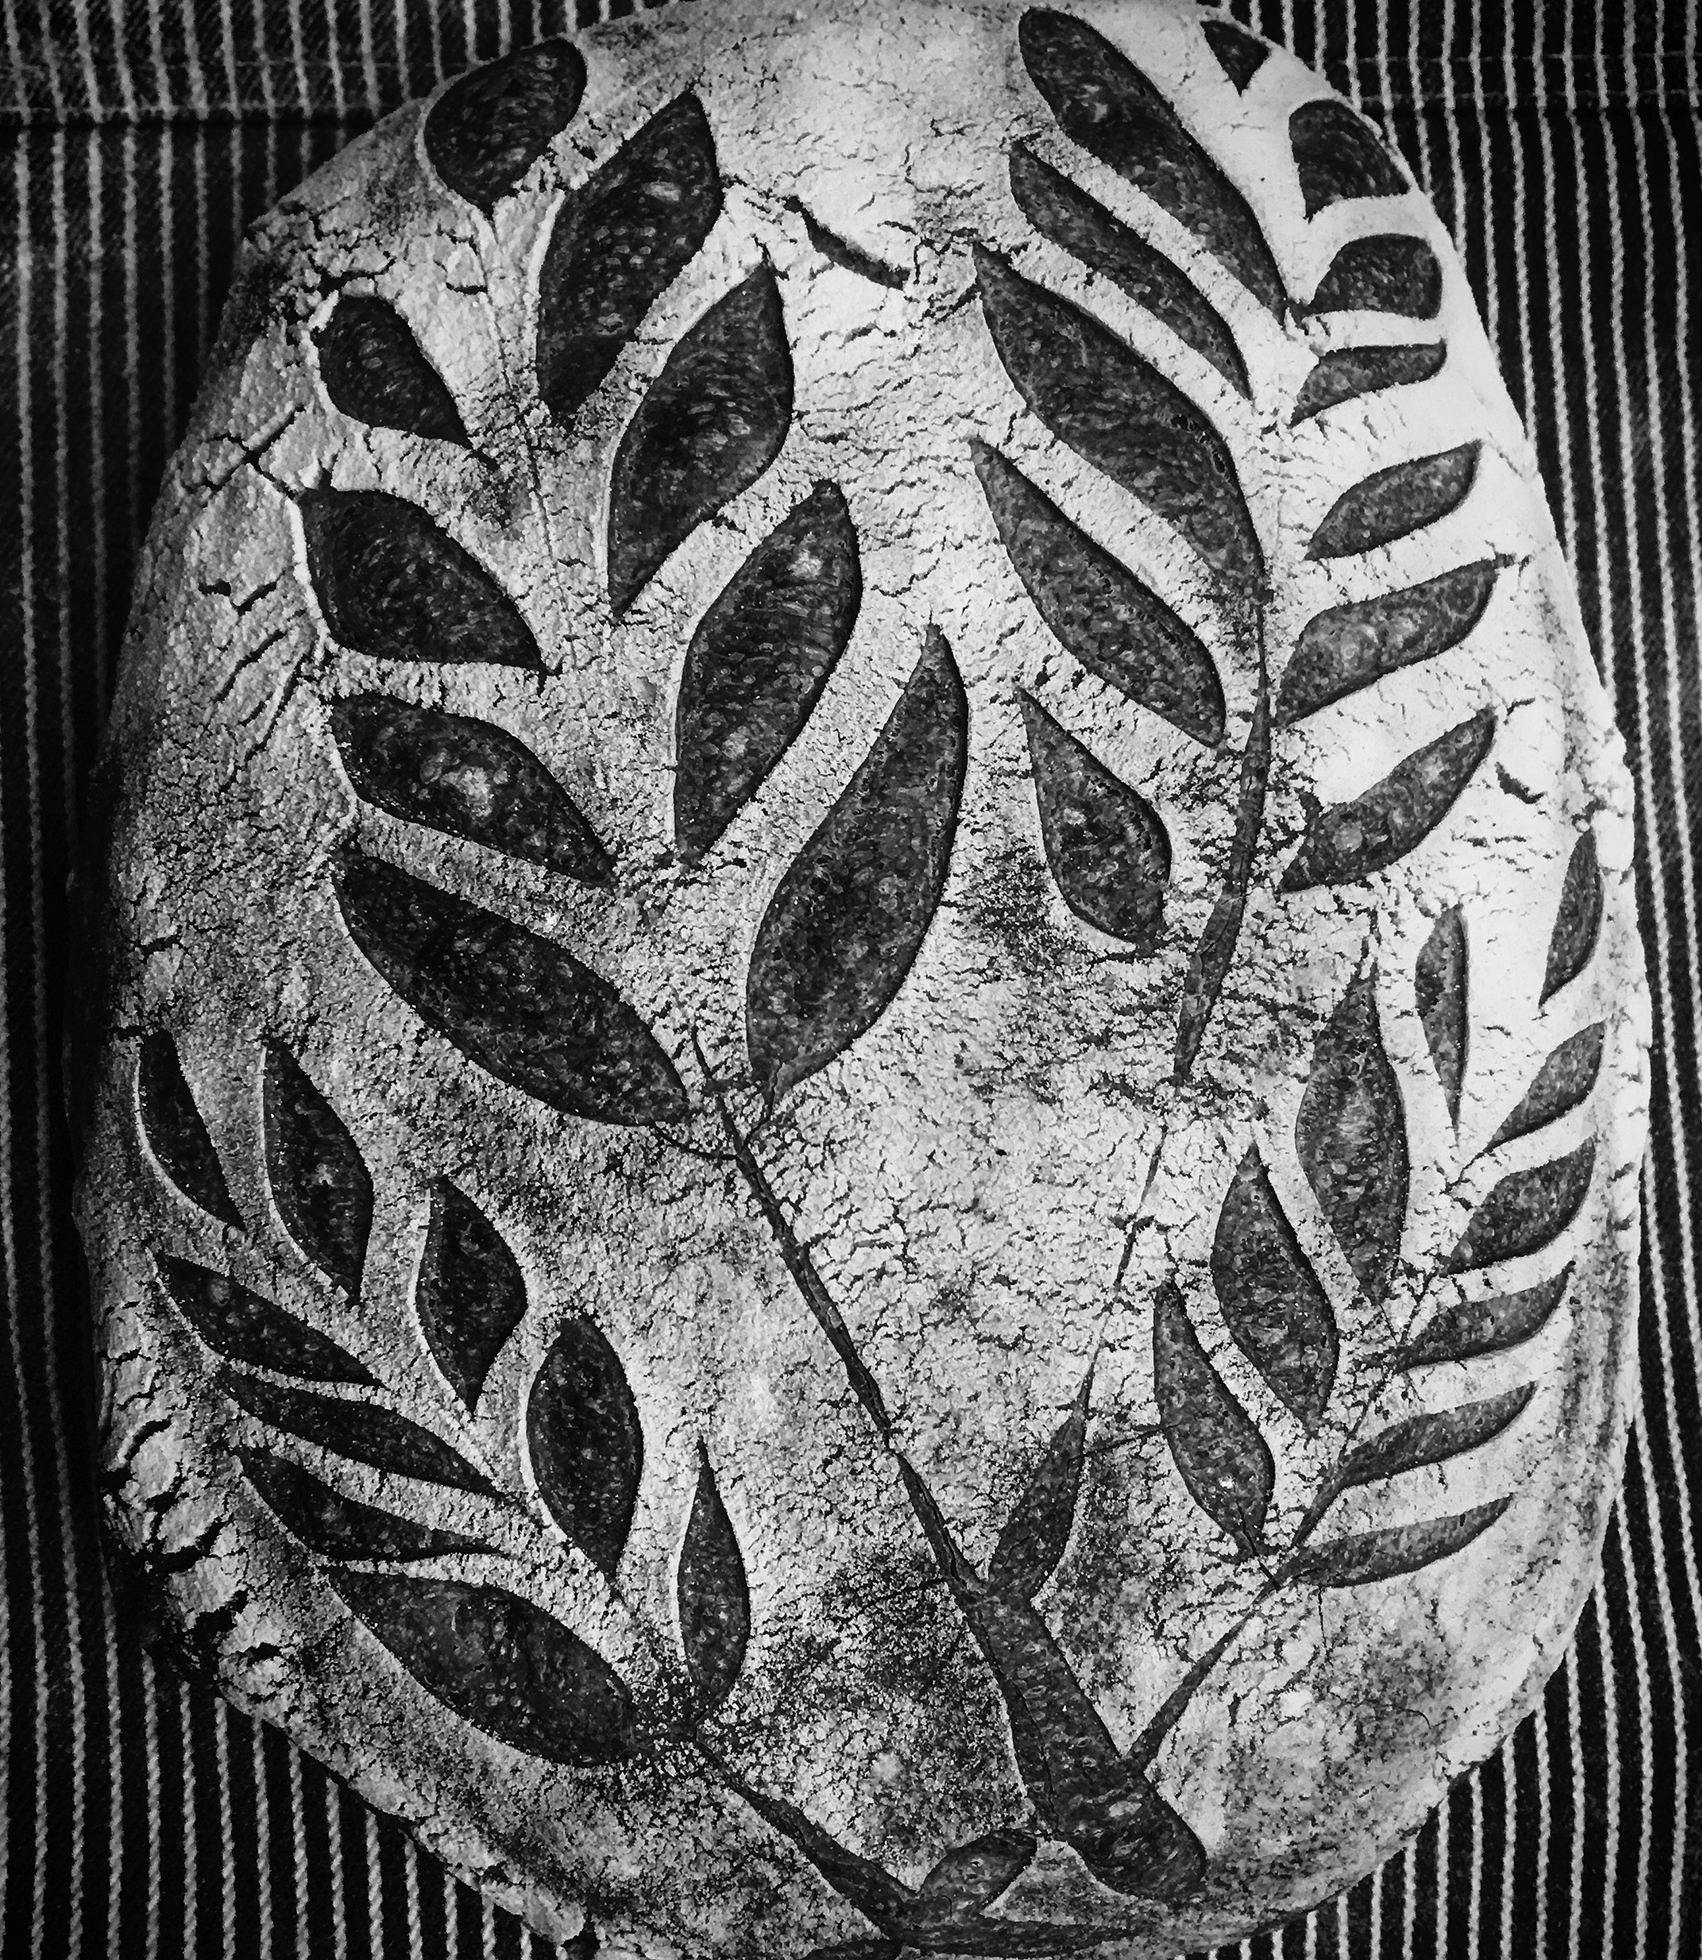 An artisan loaf of bread with stenciled leaves on the crust.